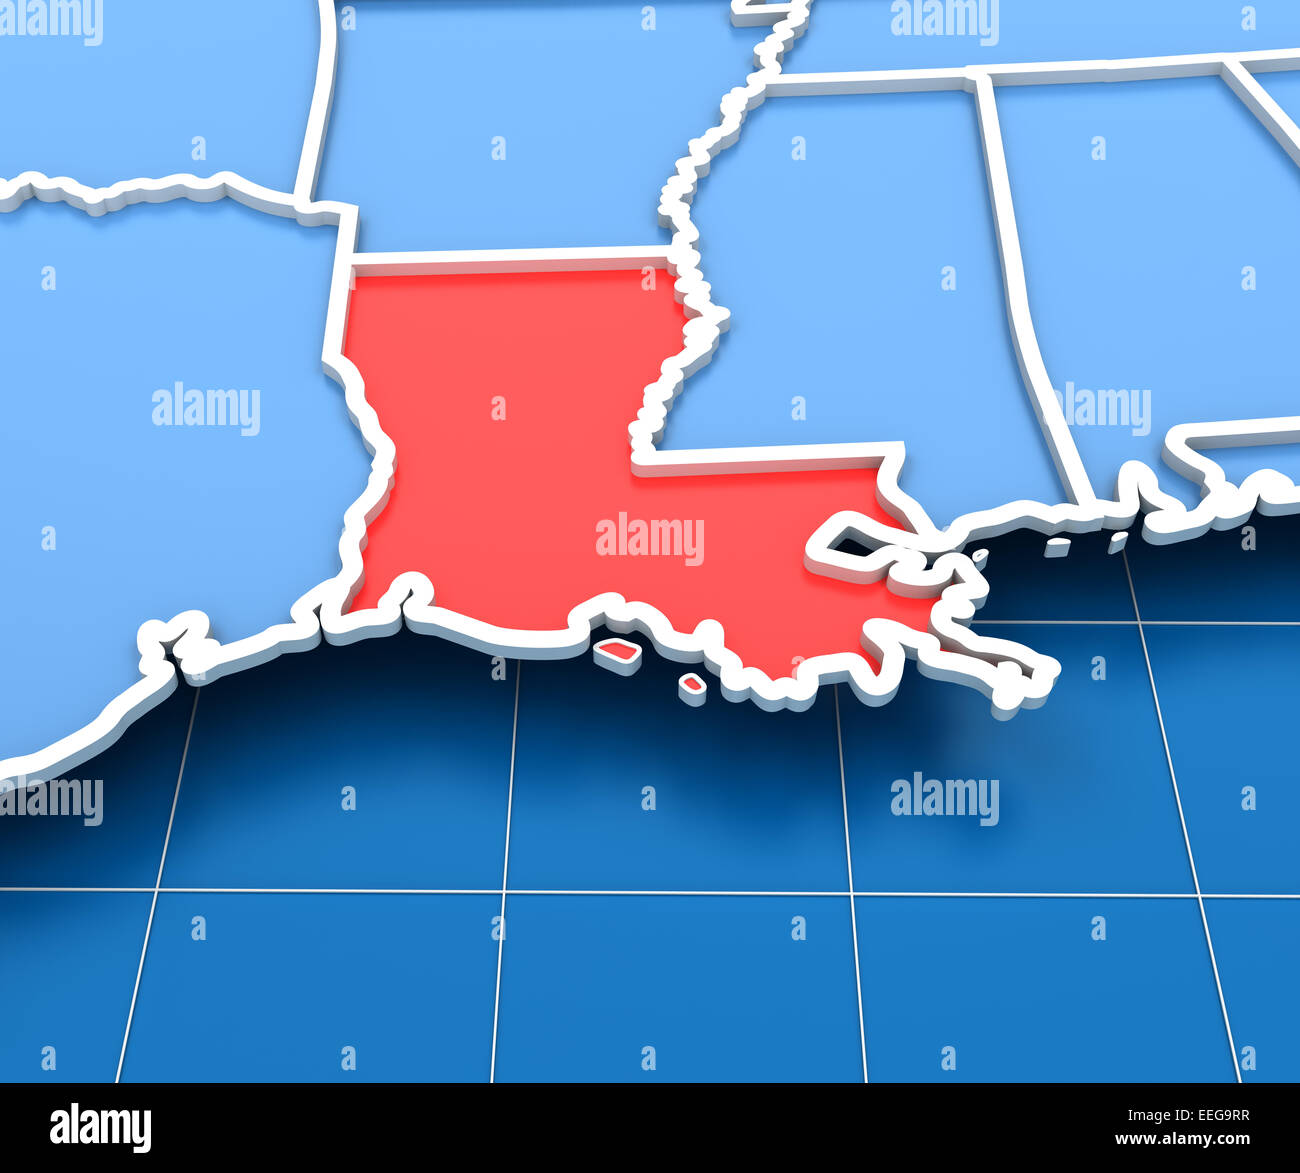 3d Render Of Usa Map With Louisiana State Highlighted Stock Photo